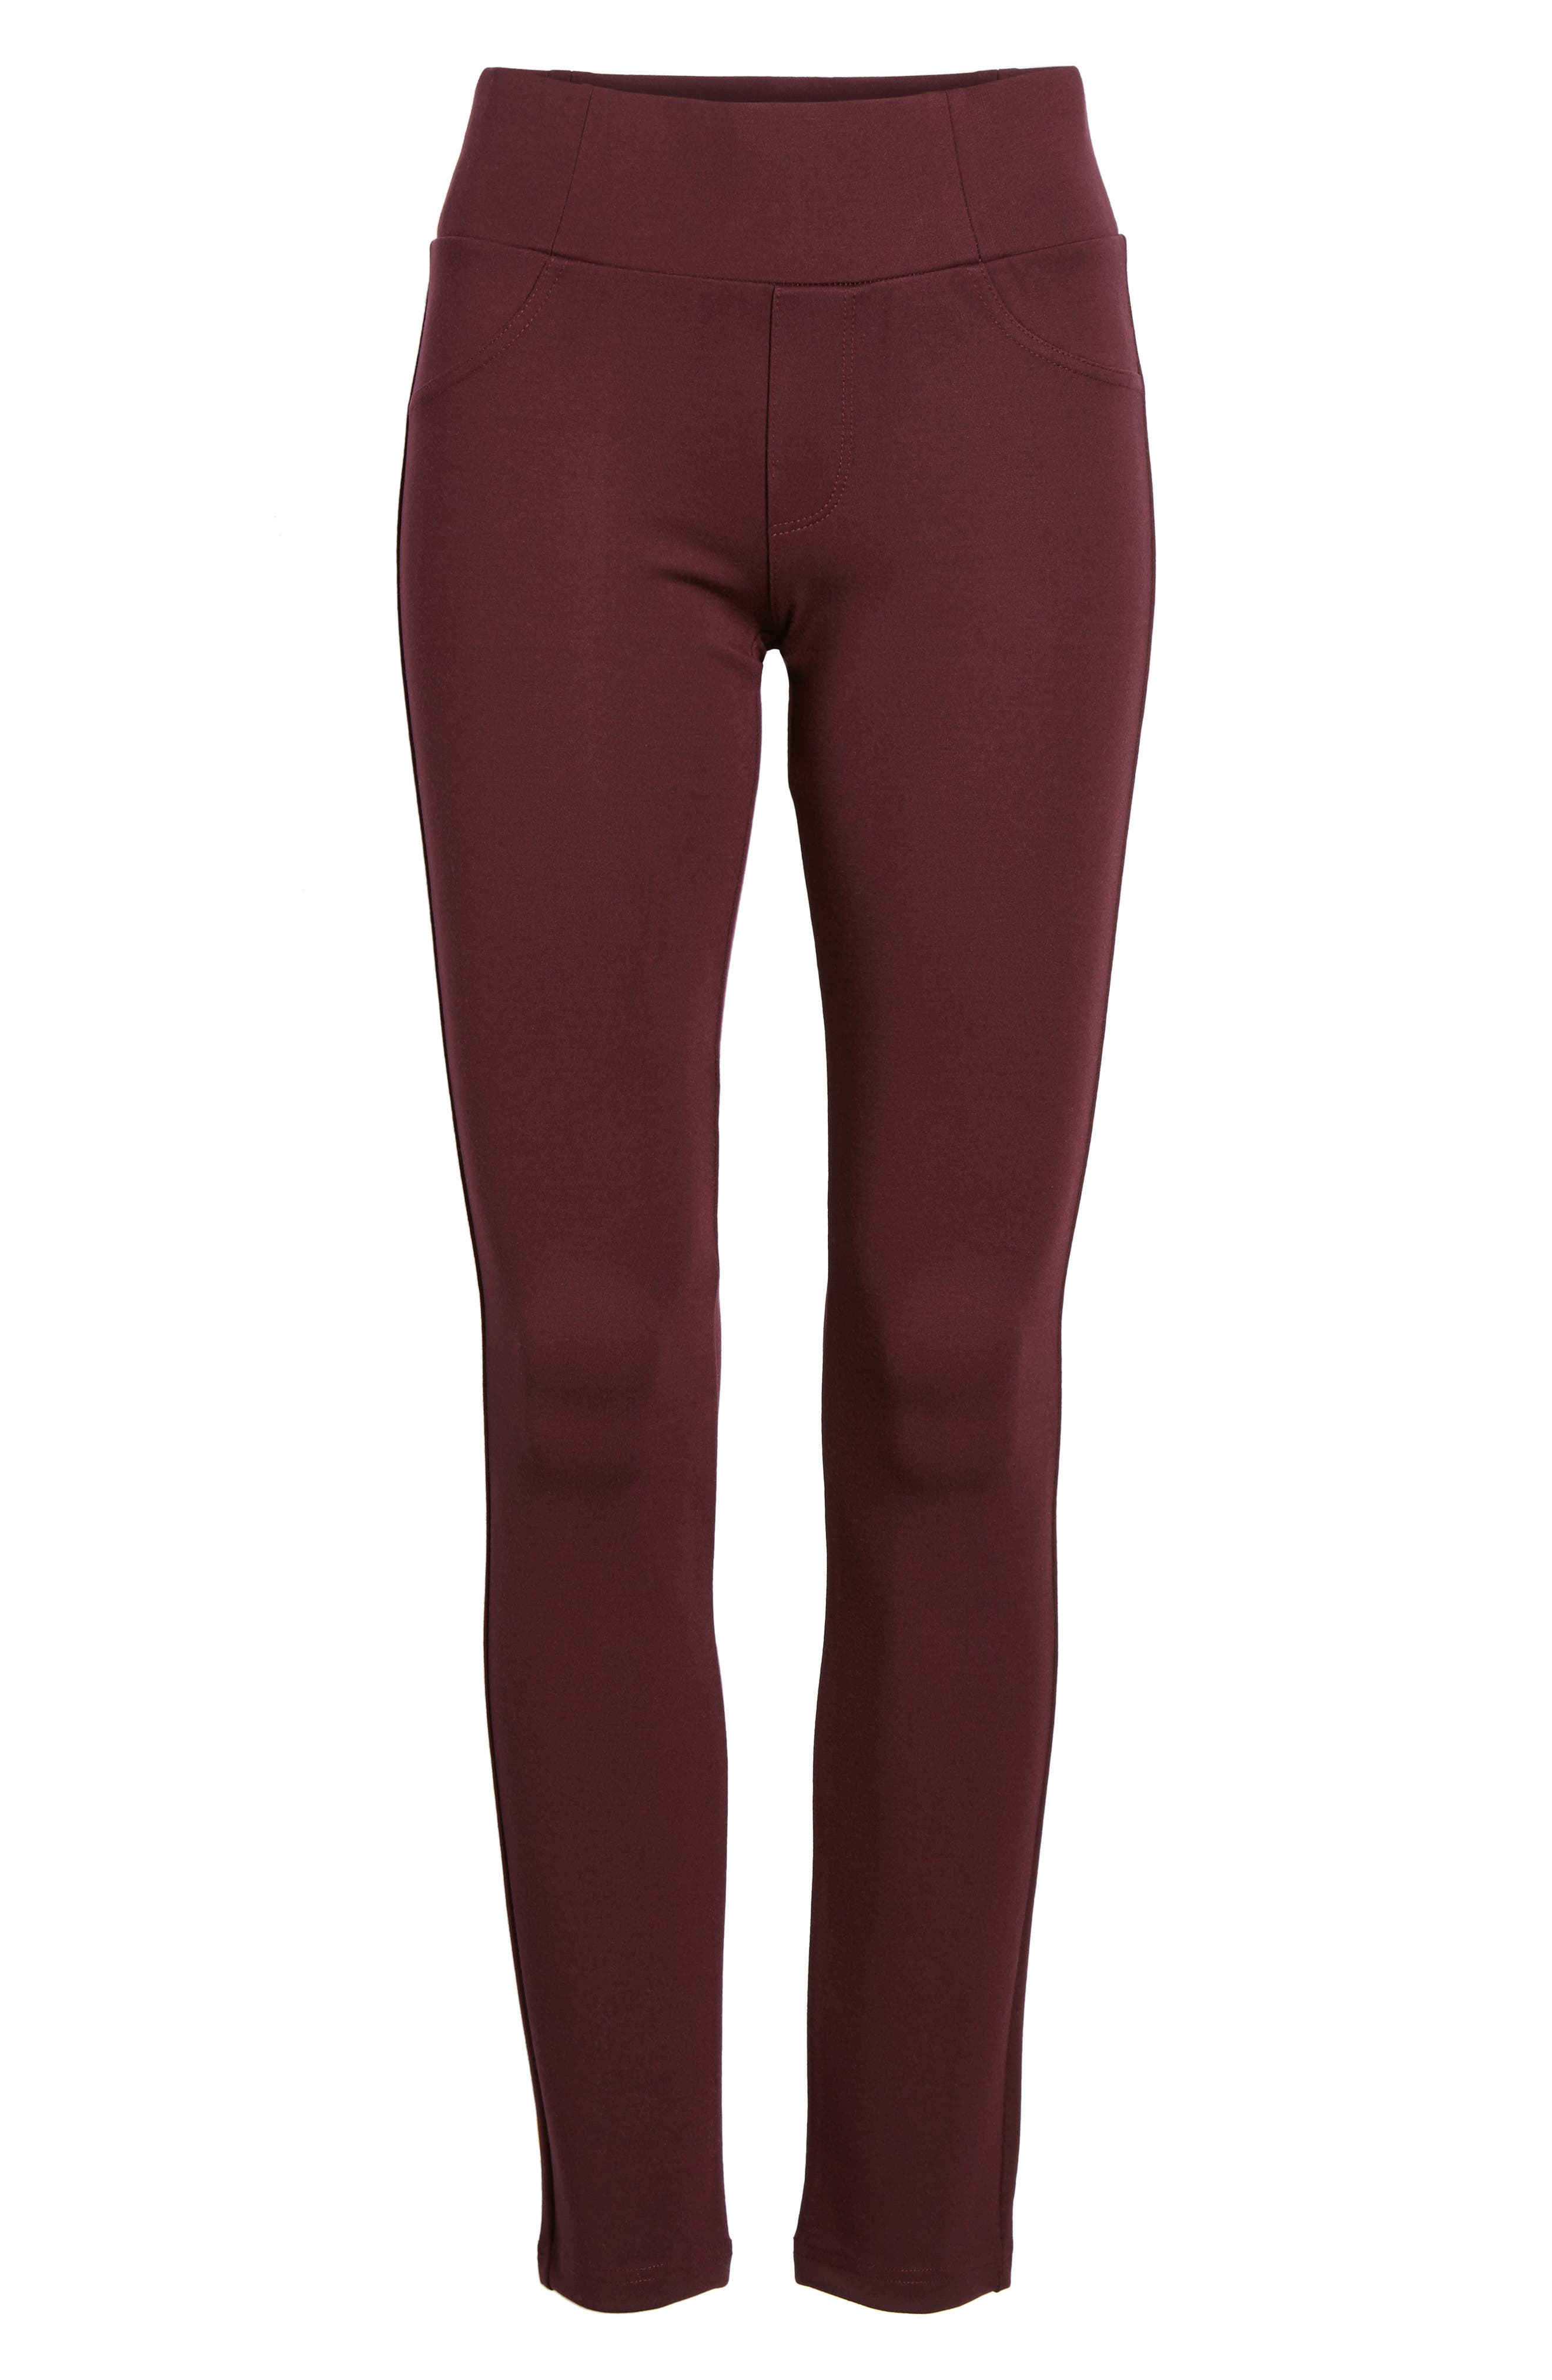 High Waist Ponte Pants,                             Alternate thumbnail 6, color,                             Wine